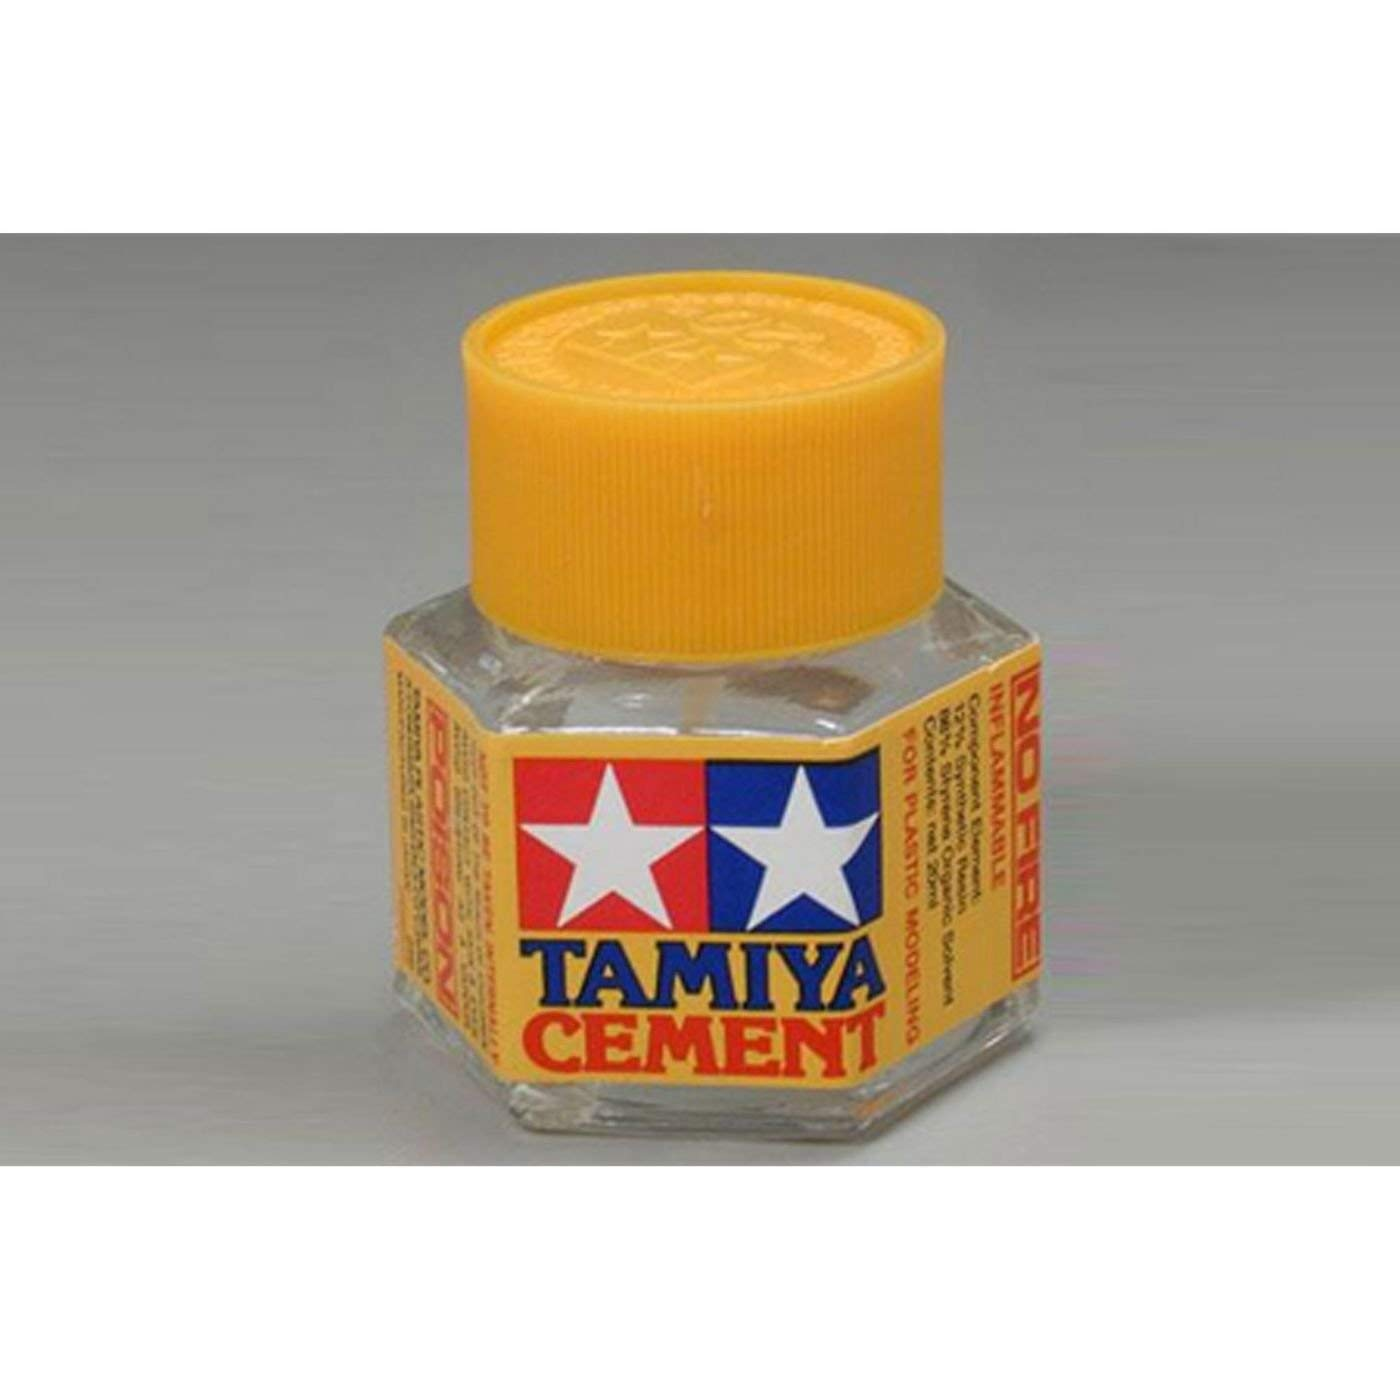 Tamiya TAM87012 Plastic Cement 20ml